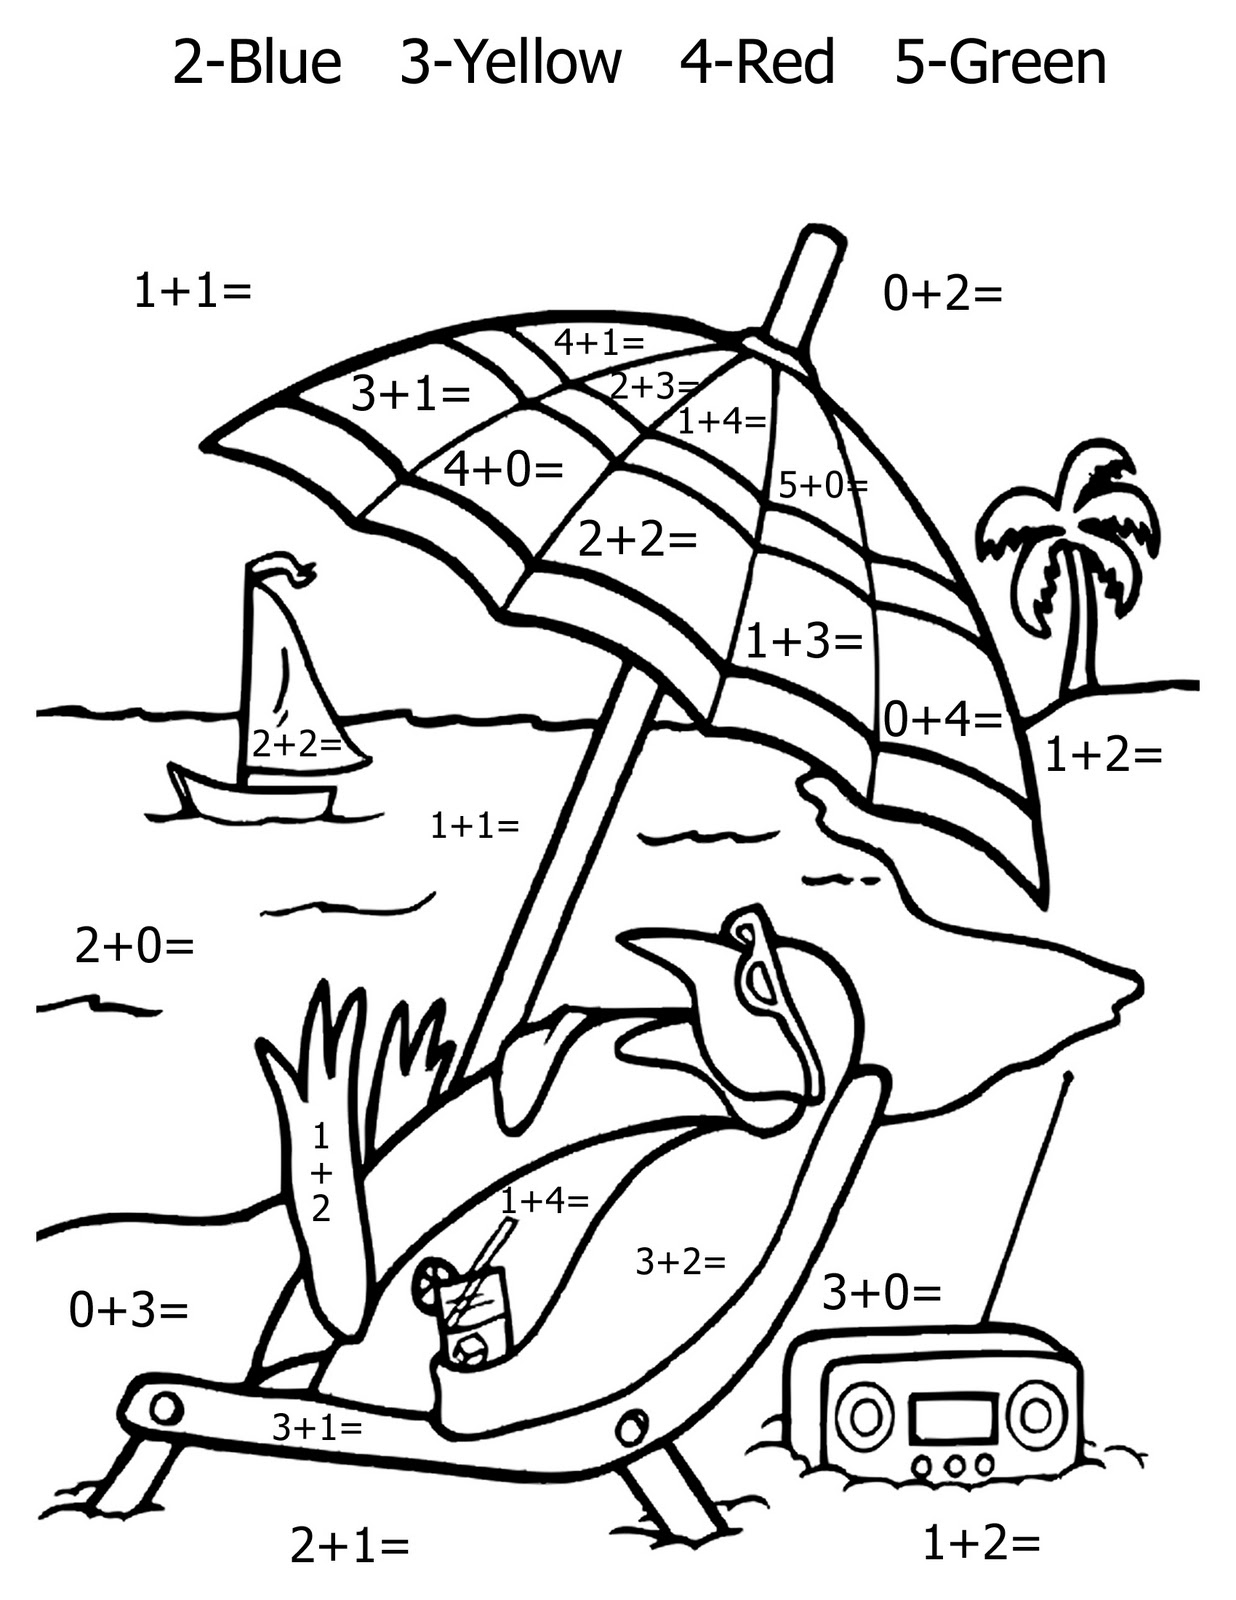 Co coloring activities math - Download Math Coloring Pages 11